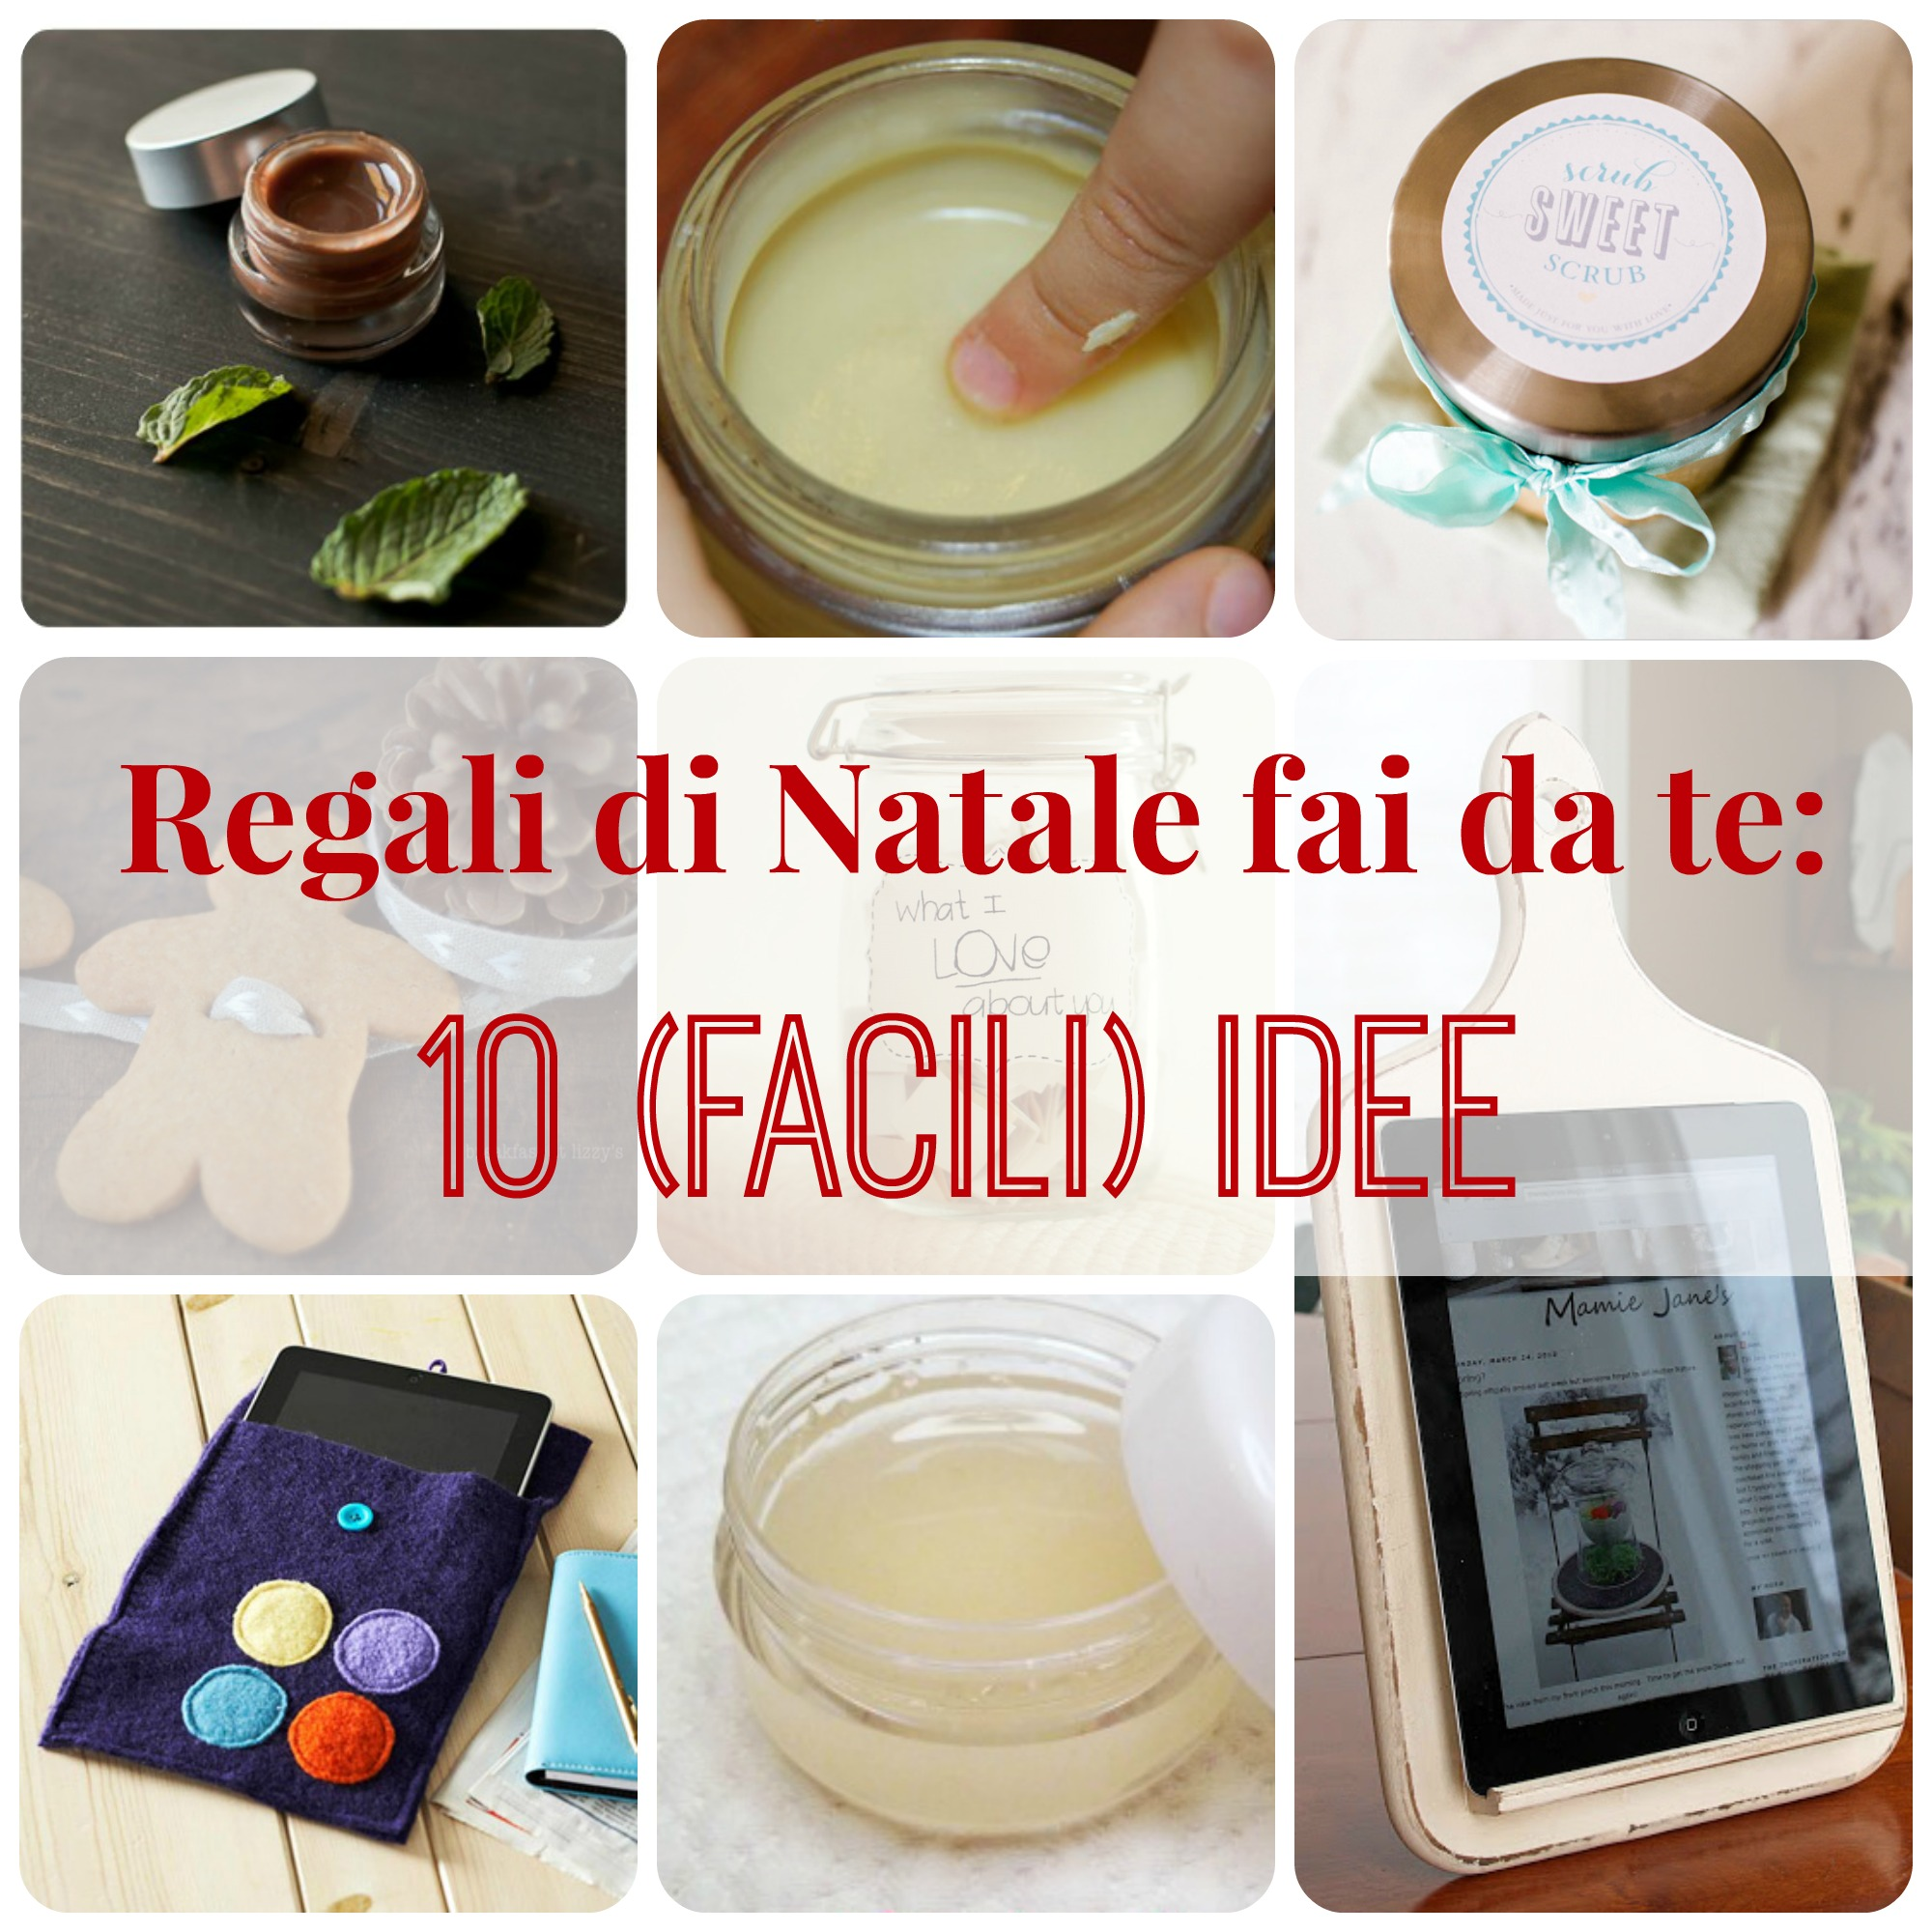 Regali natale fai da te 10 facili idee babygreen for Idee regali